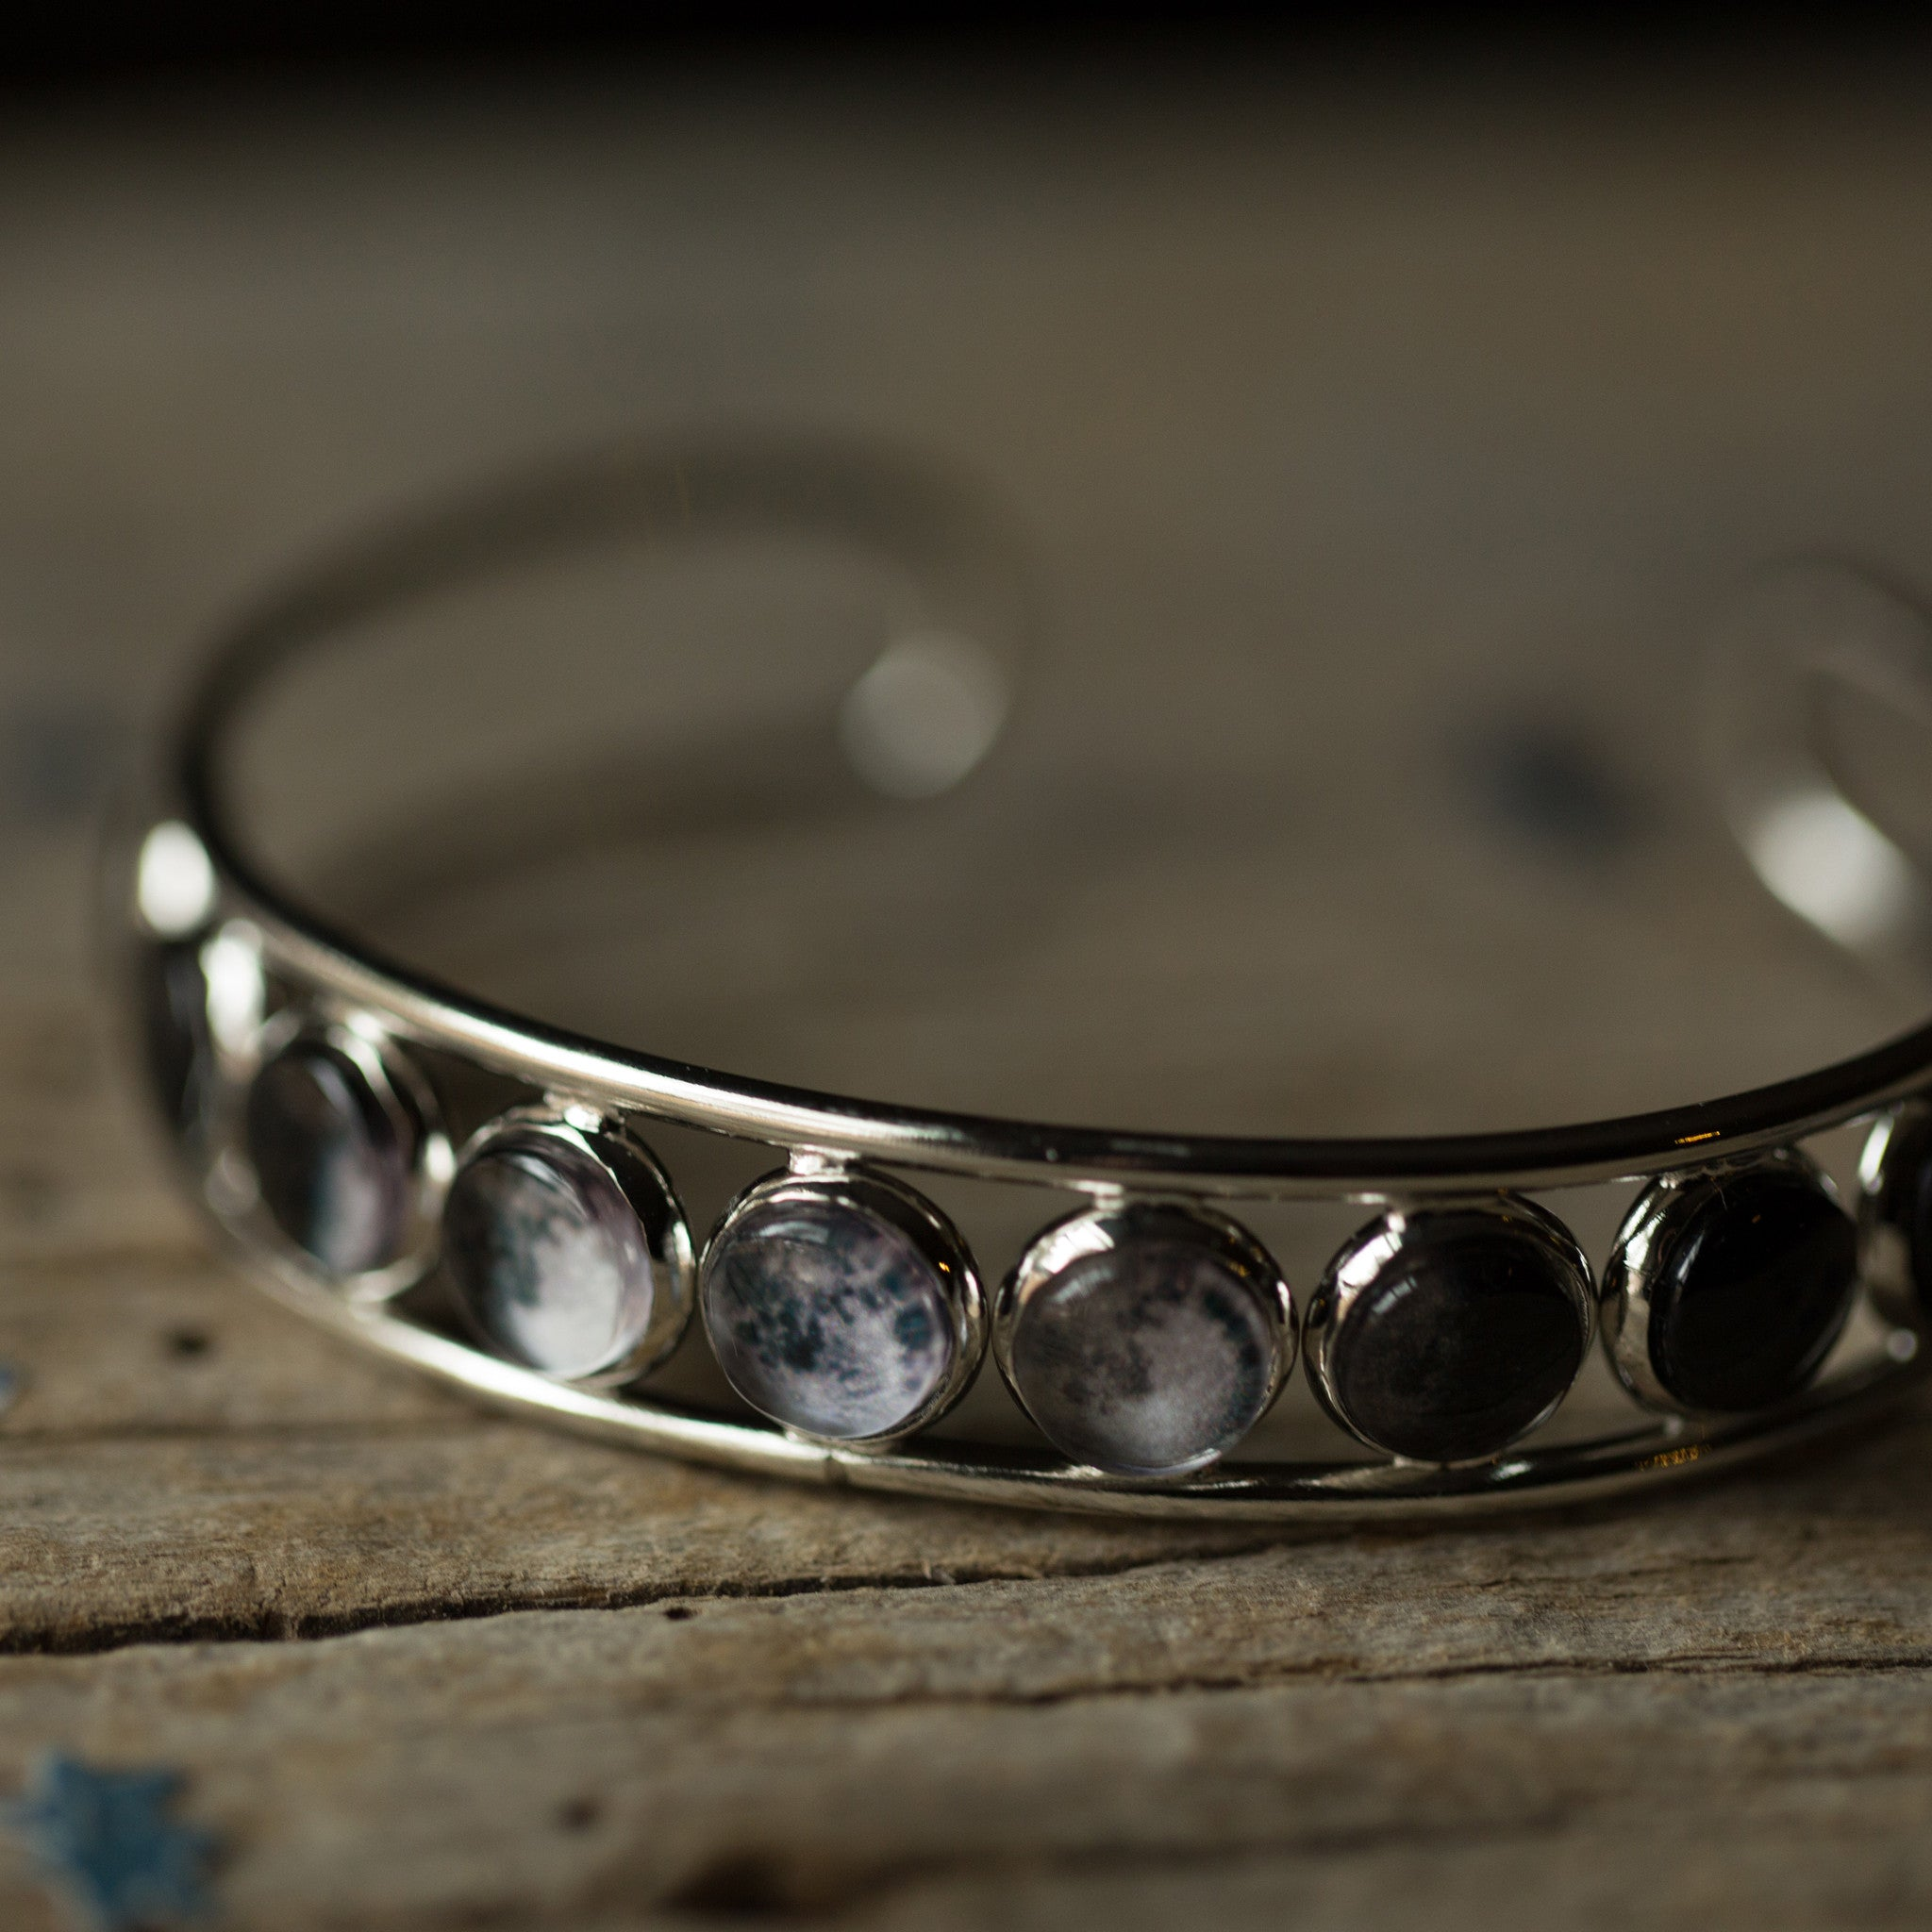 Moon phase cuff bangle bracelet - 9 lunar phases - galaxy outer space astronomy jewelry by Yugen Tribe, handmade, designed, and owned by women